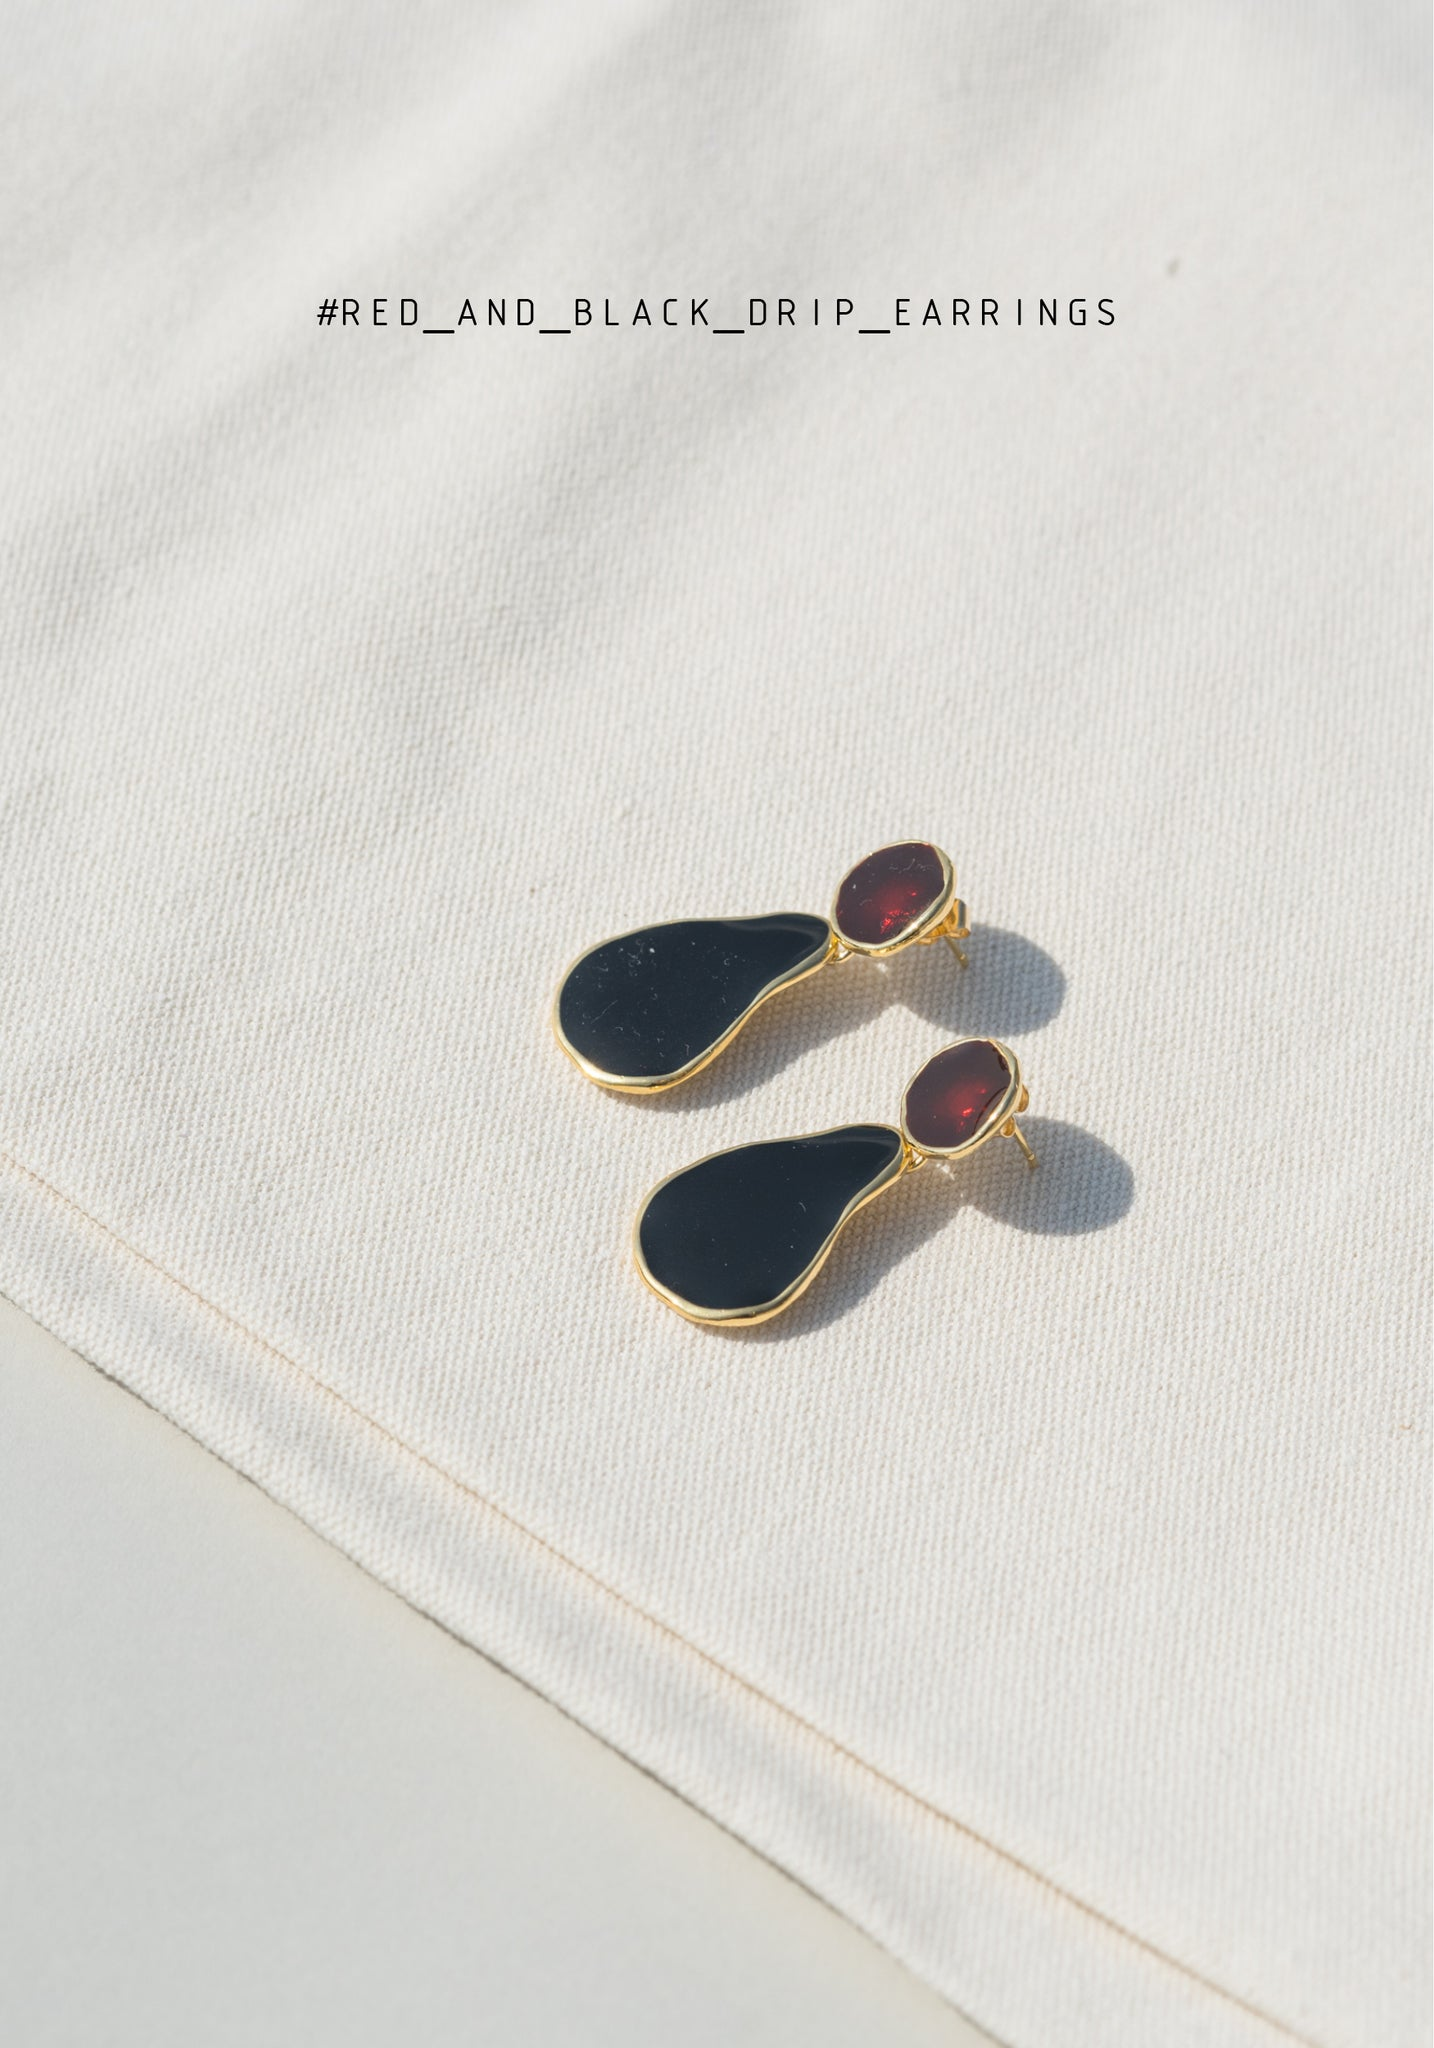 Red and Black Drip Earrings - whoami